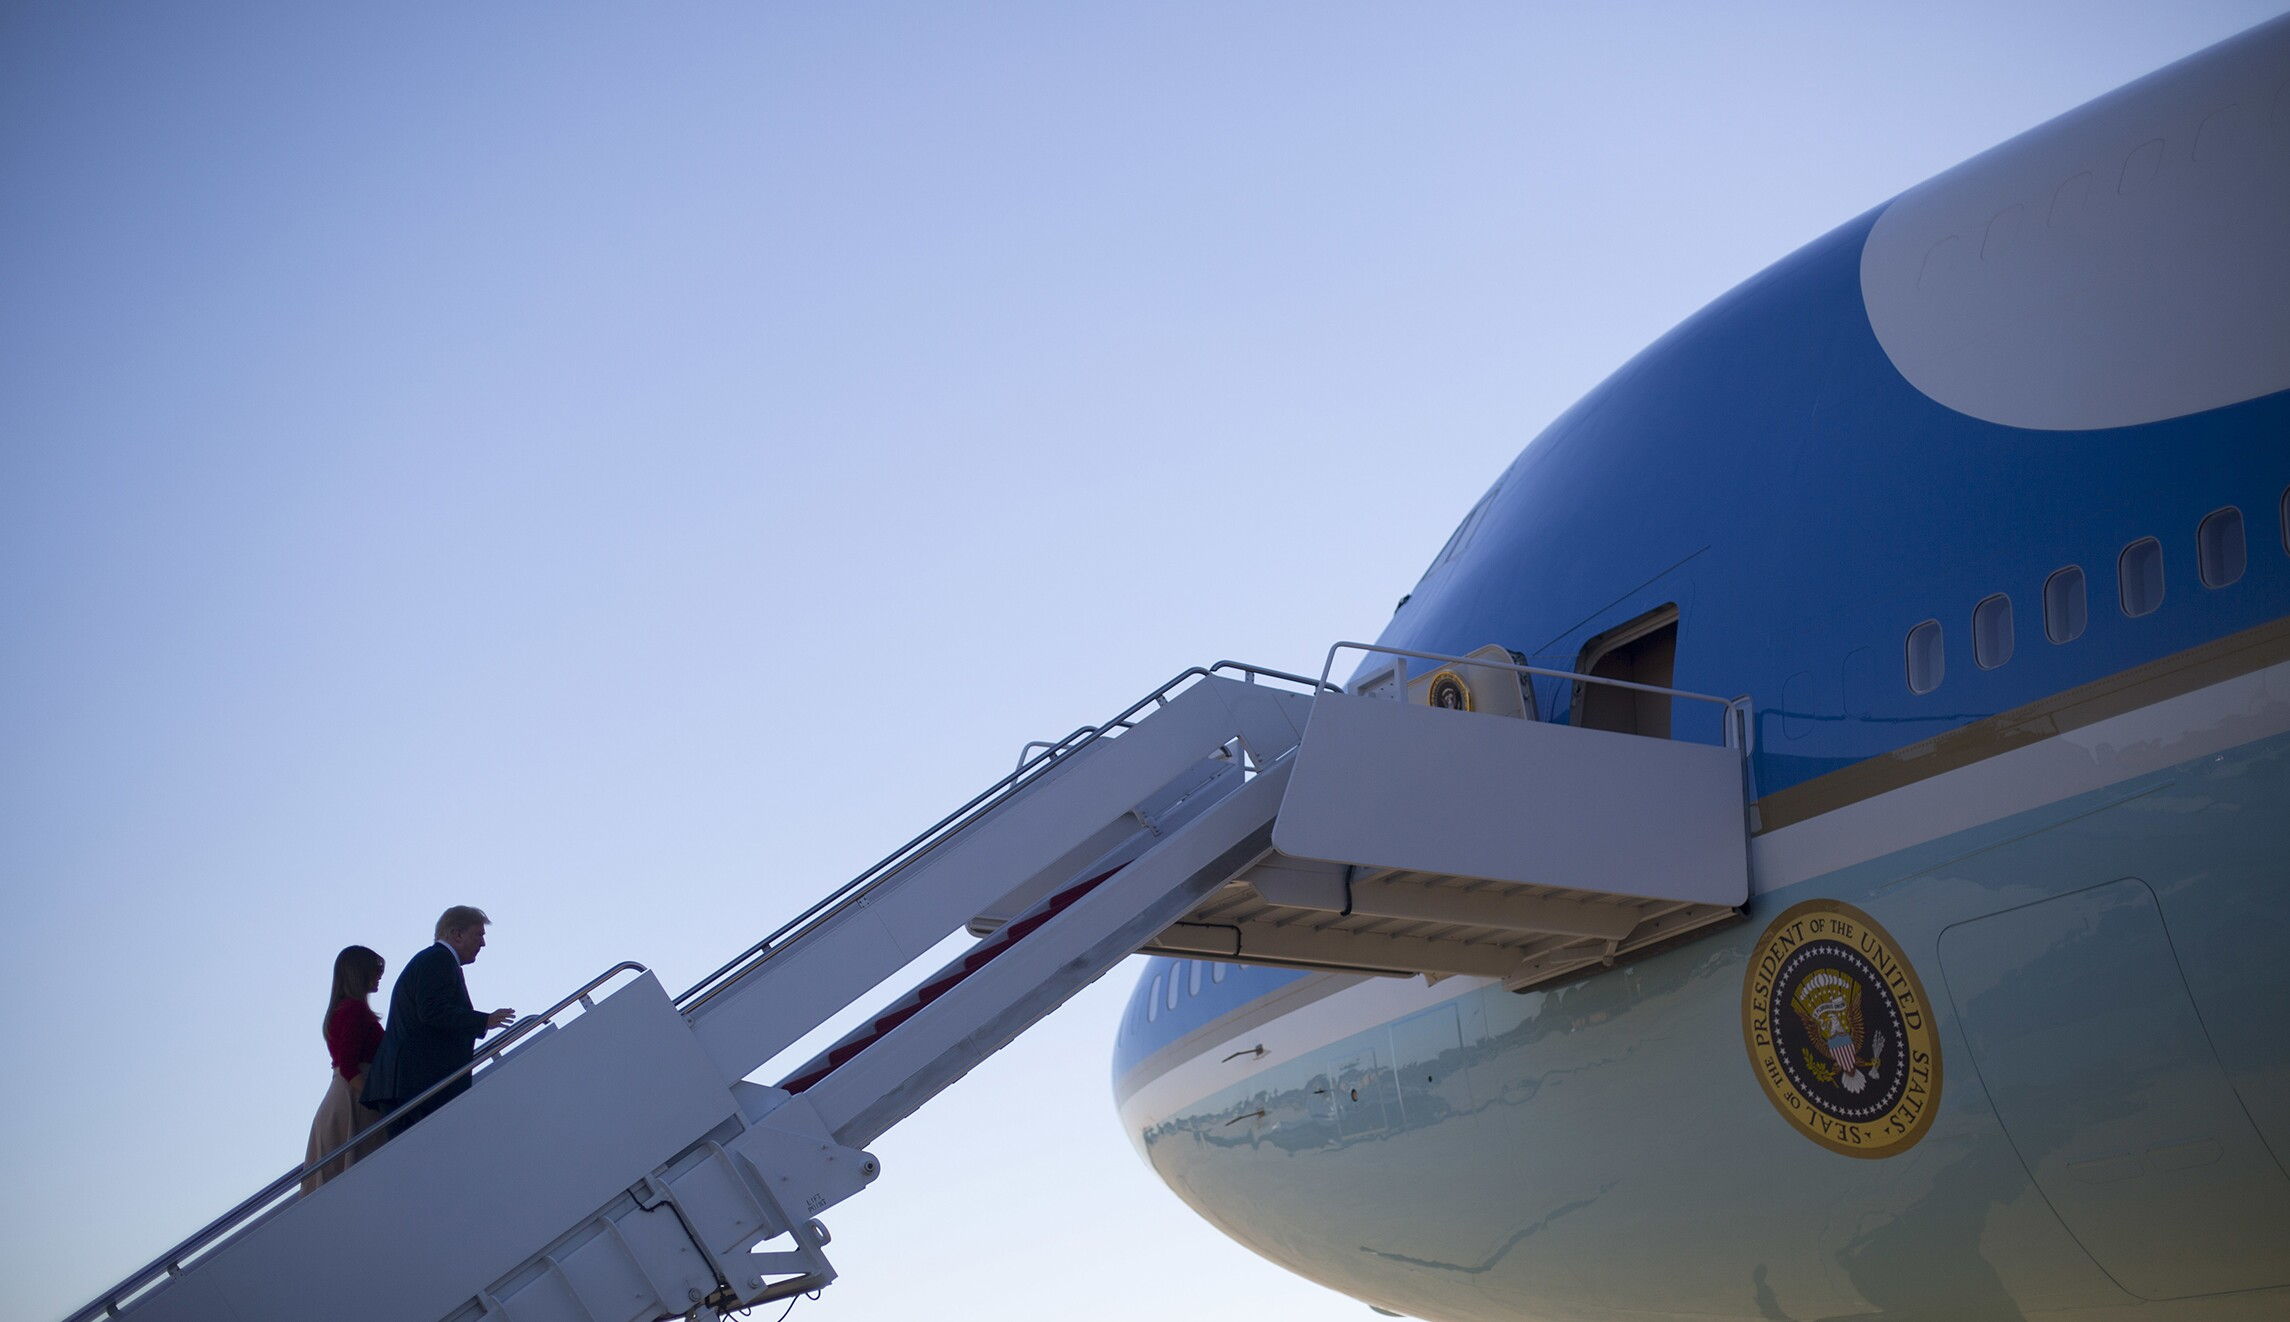 b5896d012 Trump: New, 'top of the line' Air Force One will be red, white, and blue